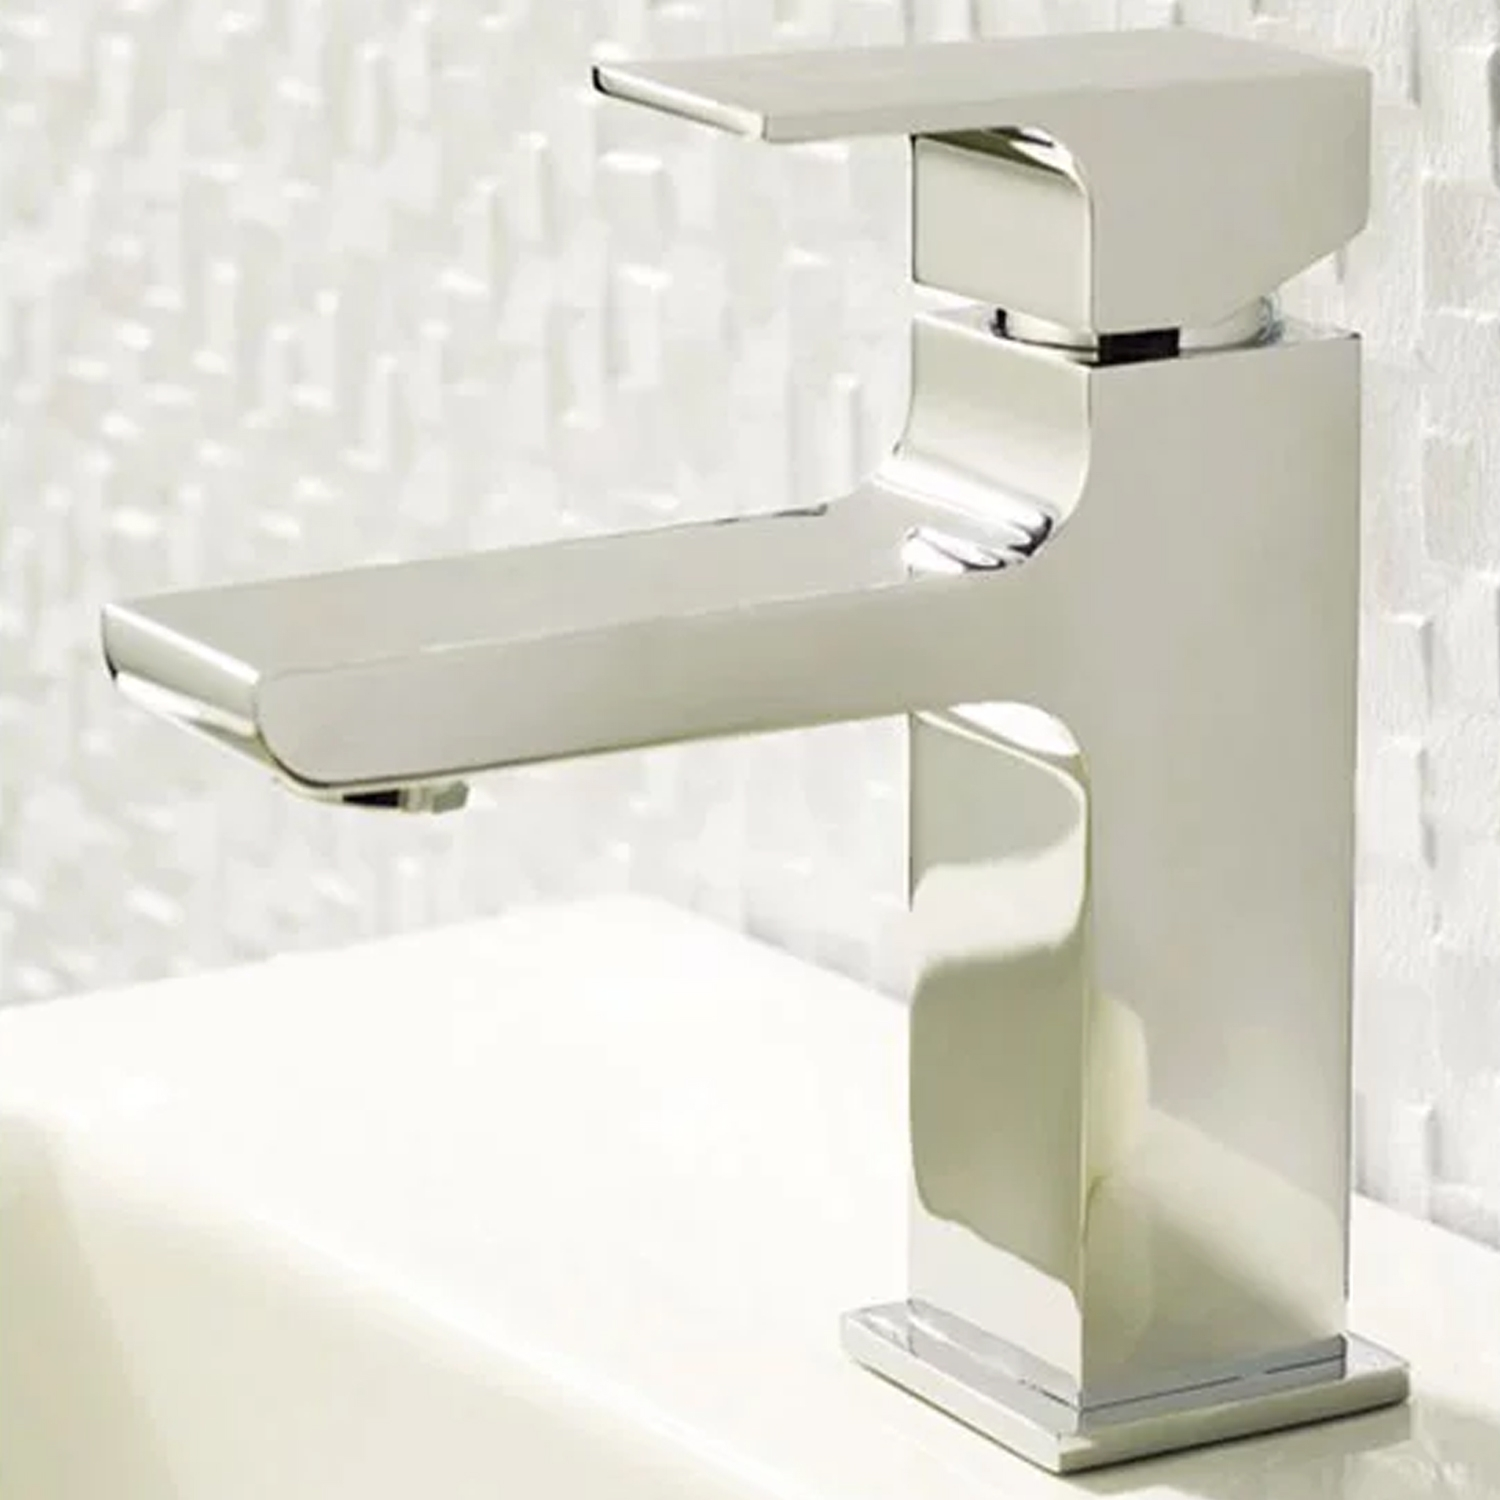 Hudson Reed Art Waterfall Mono Basin Mixer Tap Single Handle with Push Button Waste - Chrome